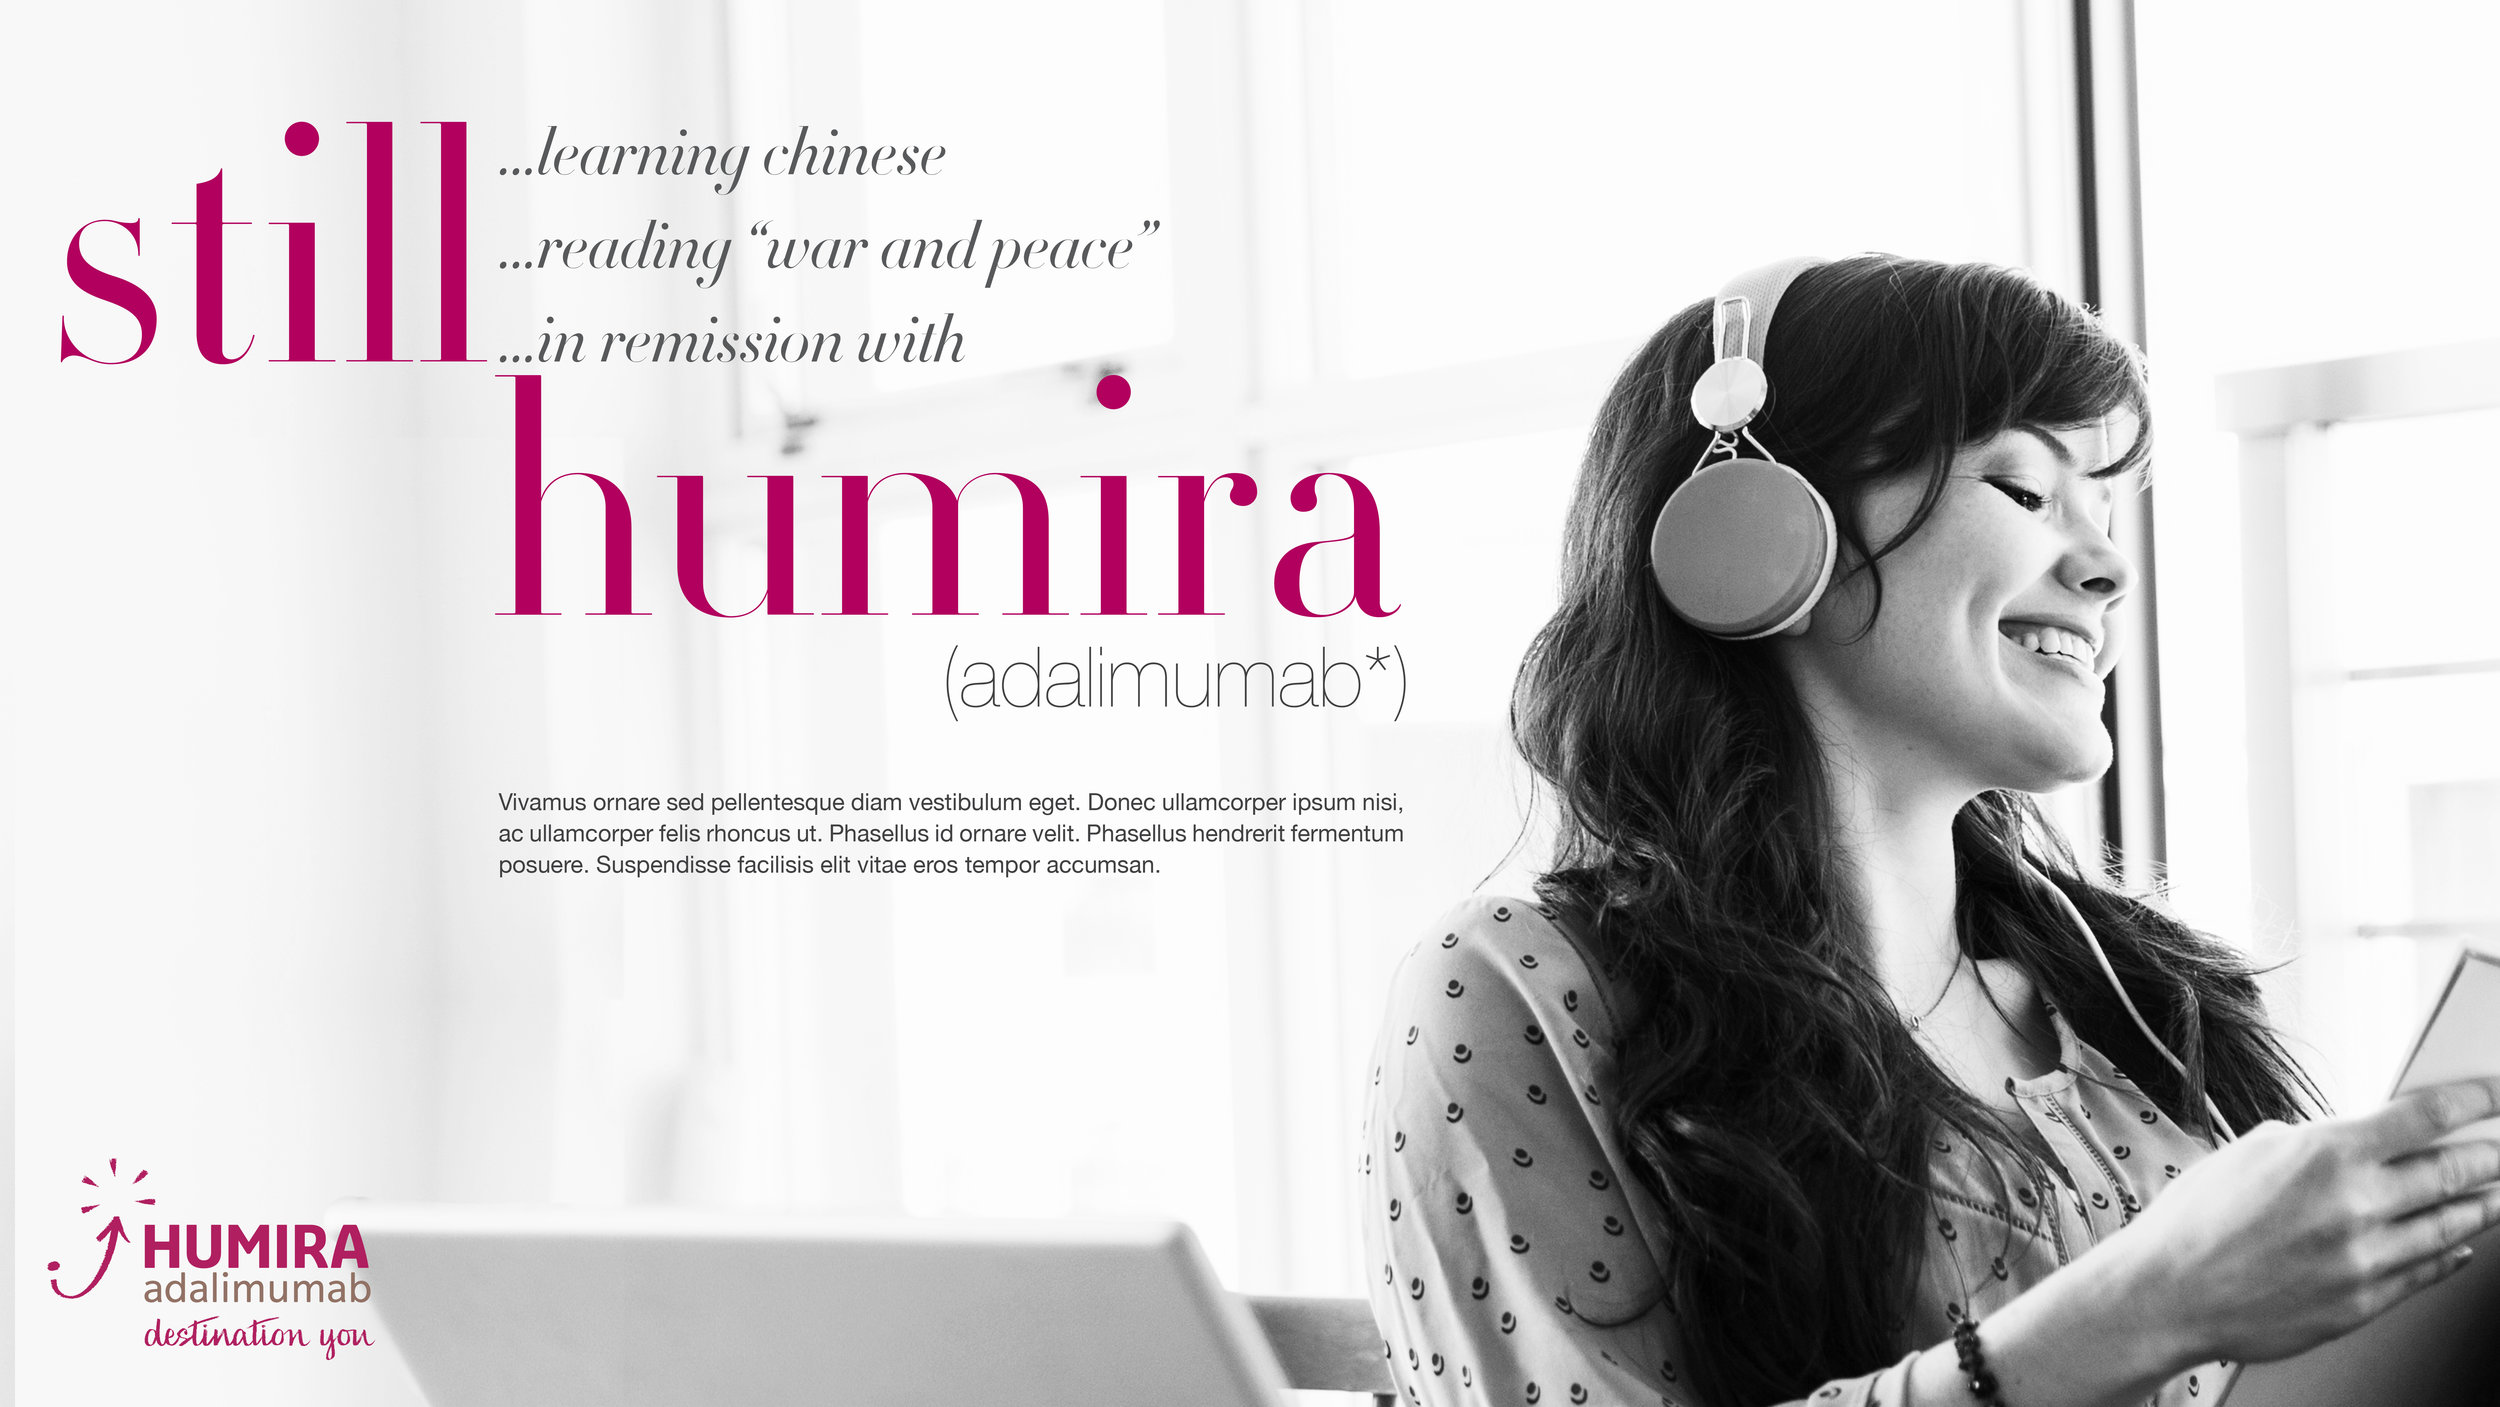 Humira Additional Ads4.jpg